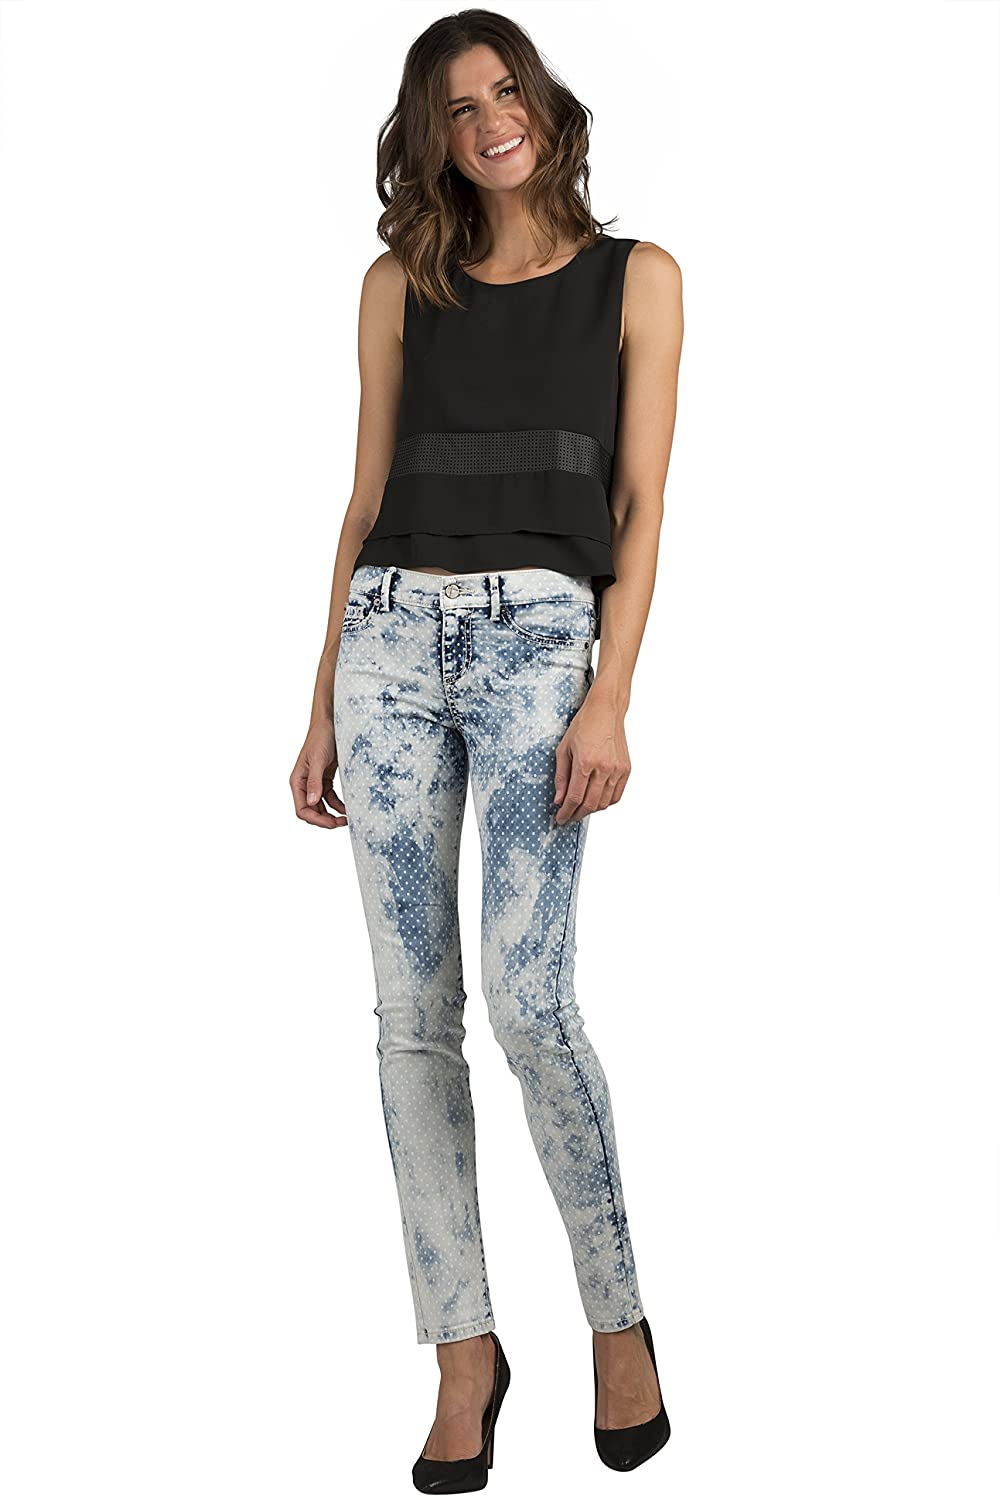 Standards & Practices Women's Stretch Denim Polka Dot Extreme Wash Skinny Jeans